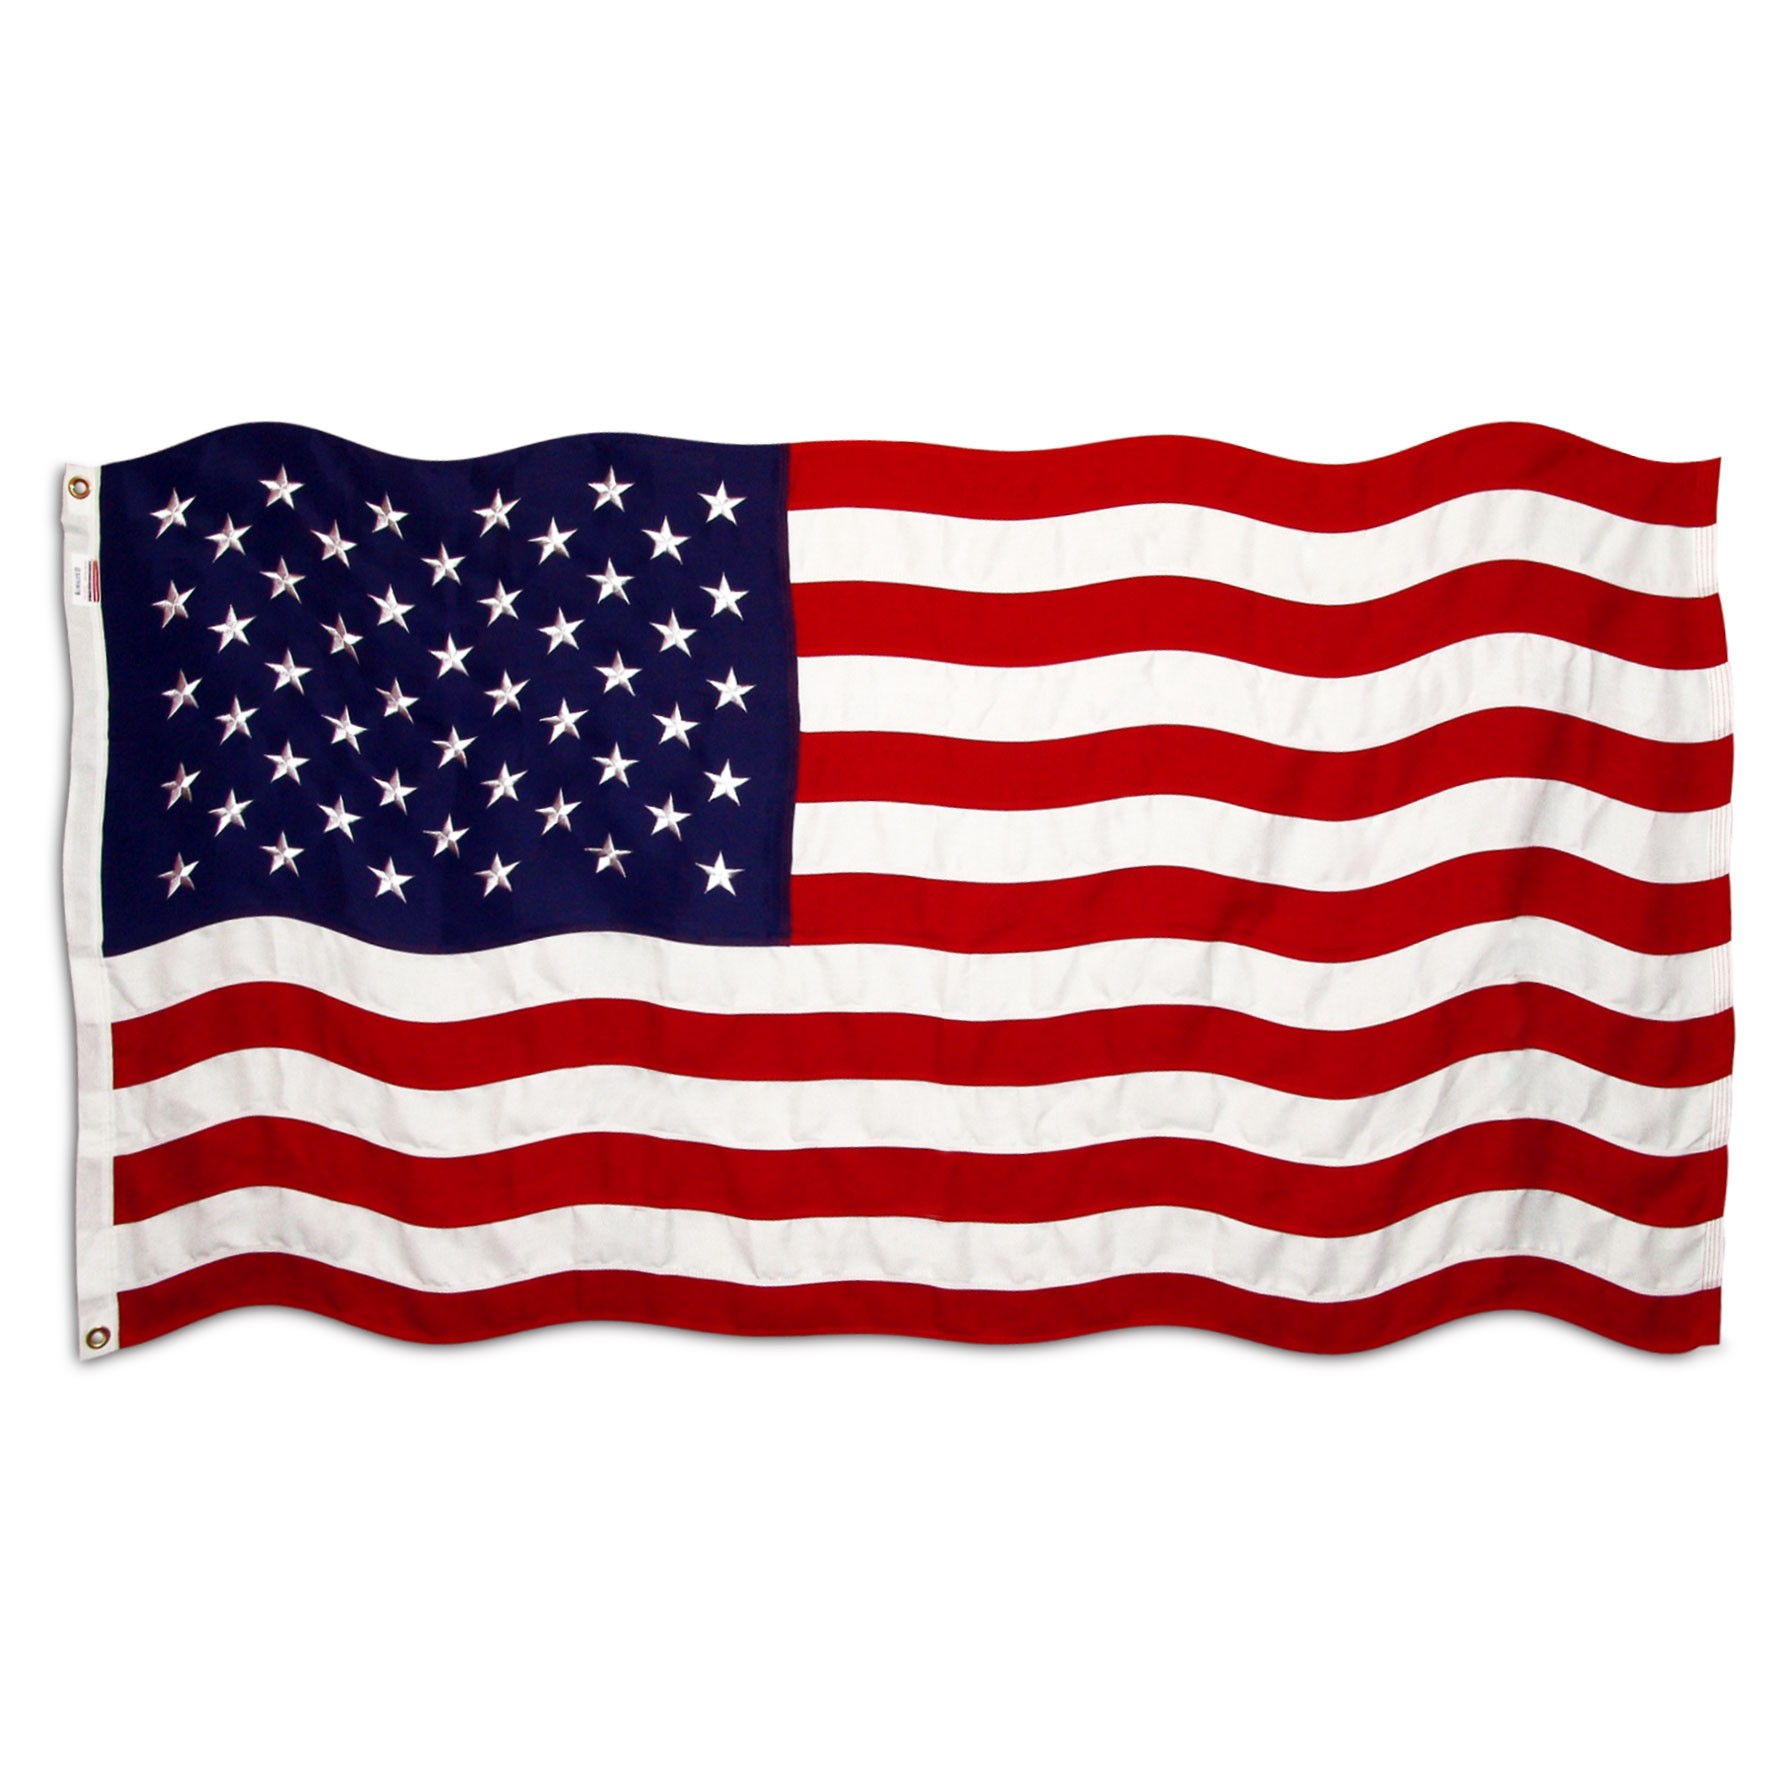 free photo american flag identity pole flag free download